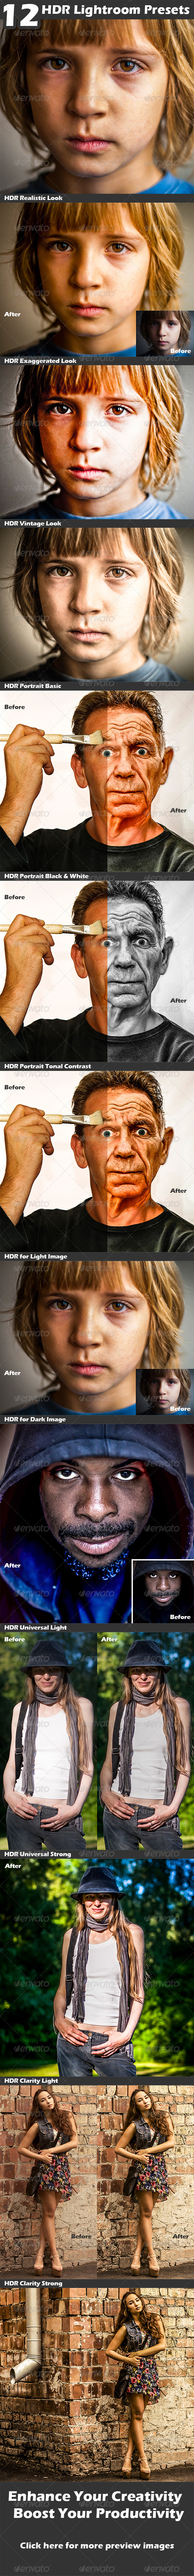 GraphicRiver HDR Presets 4726540